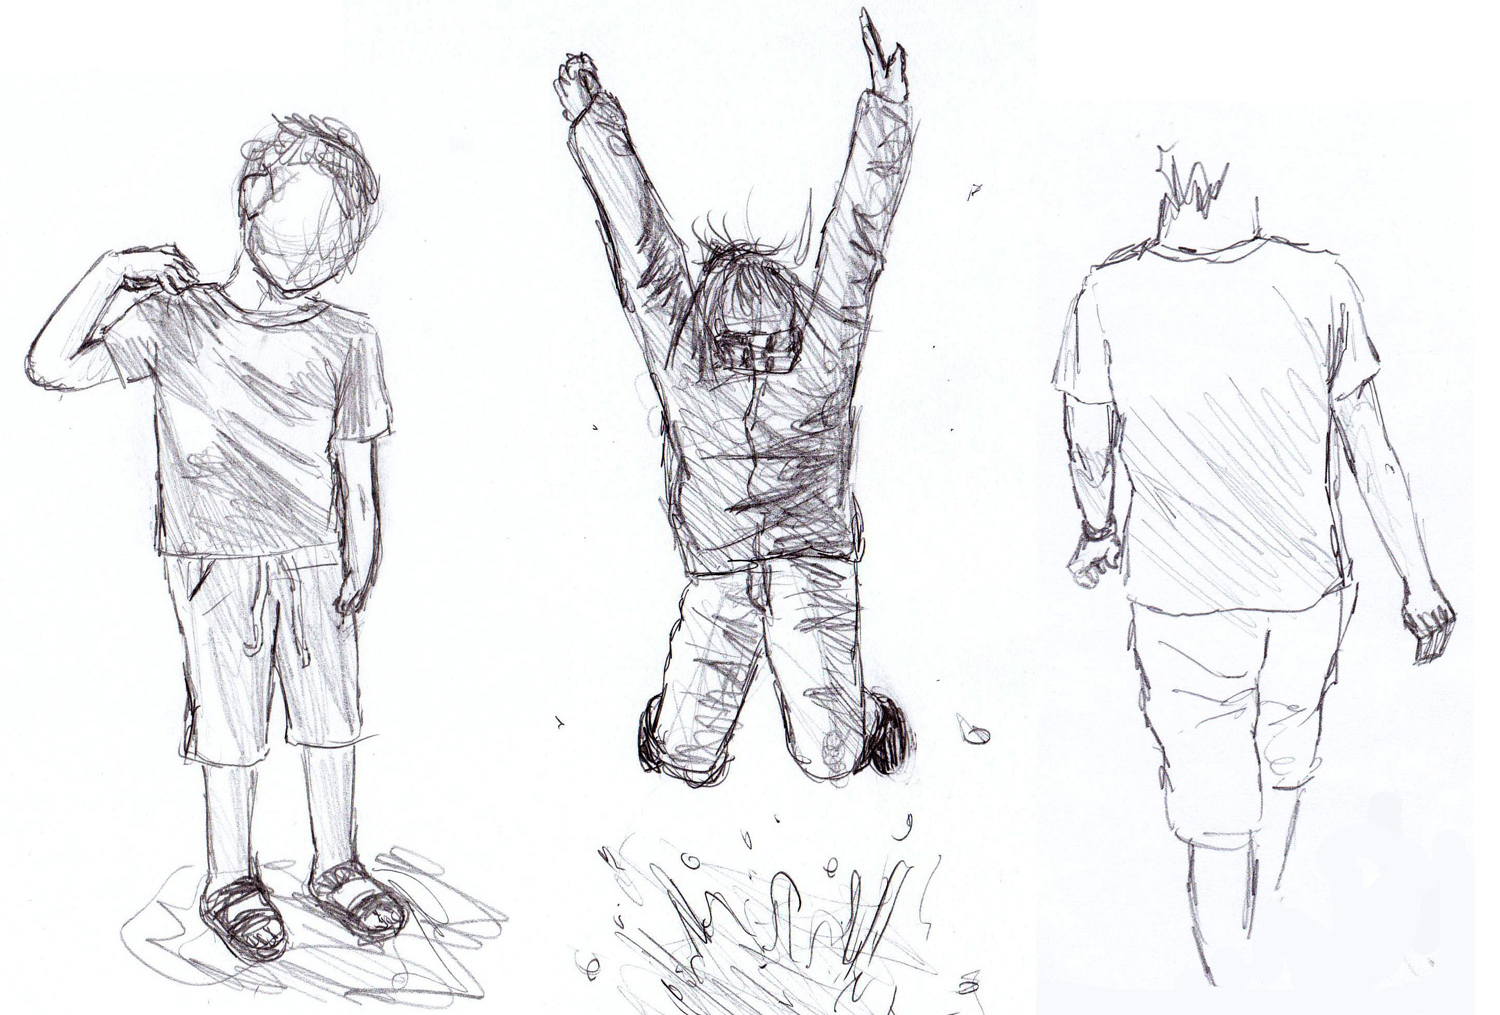 sketch sketching sketches techniques jumping elaborated guidelines lironyan 1500 handed tuned fine light these